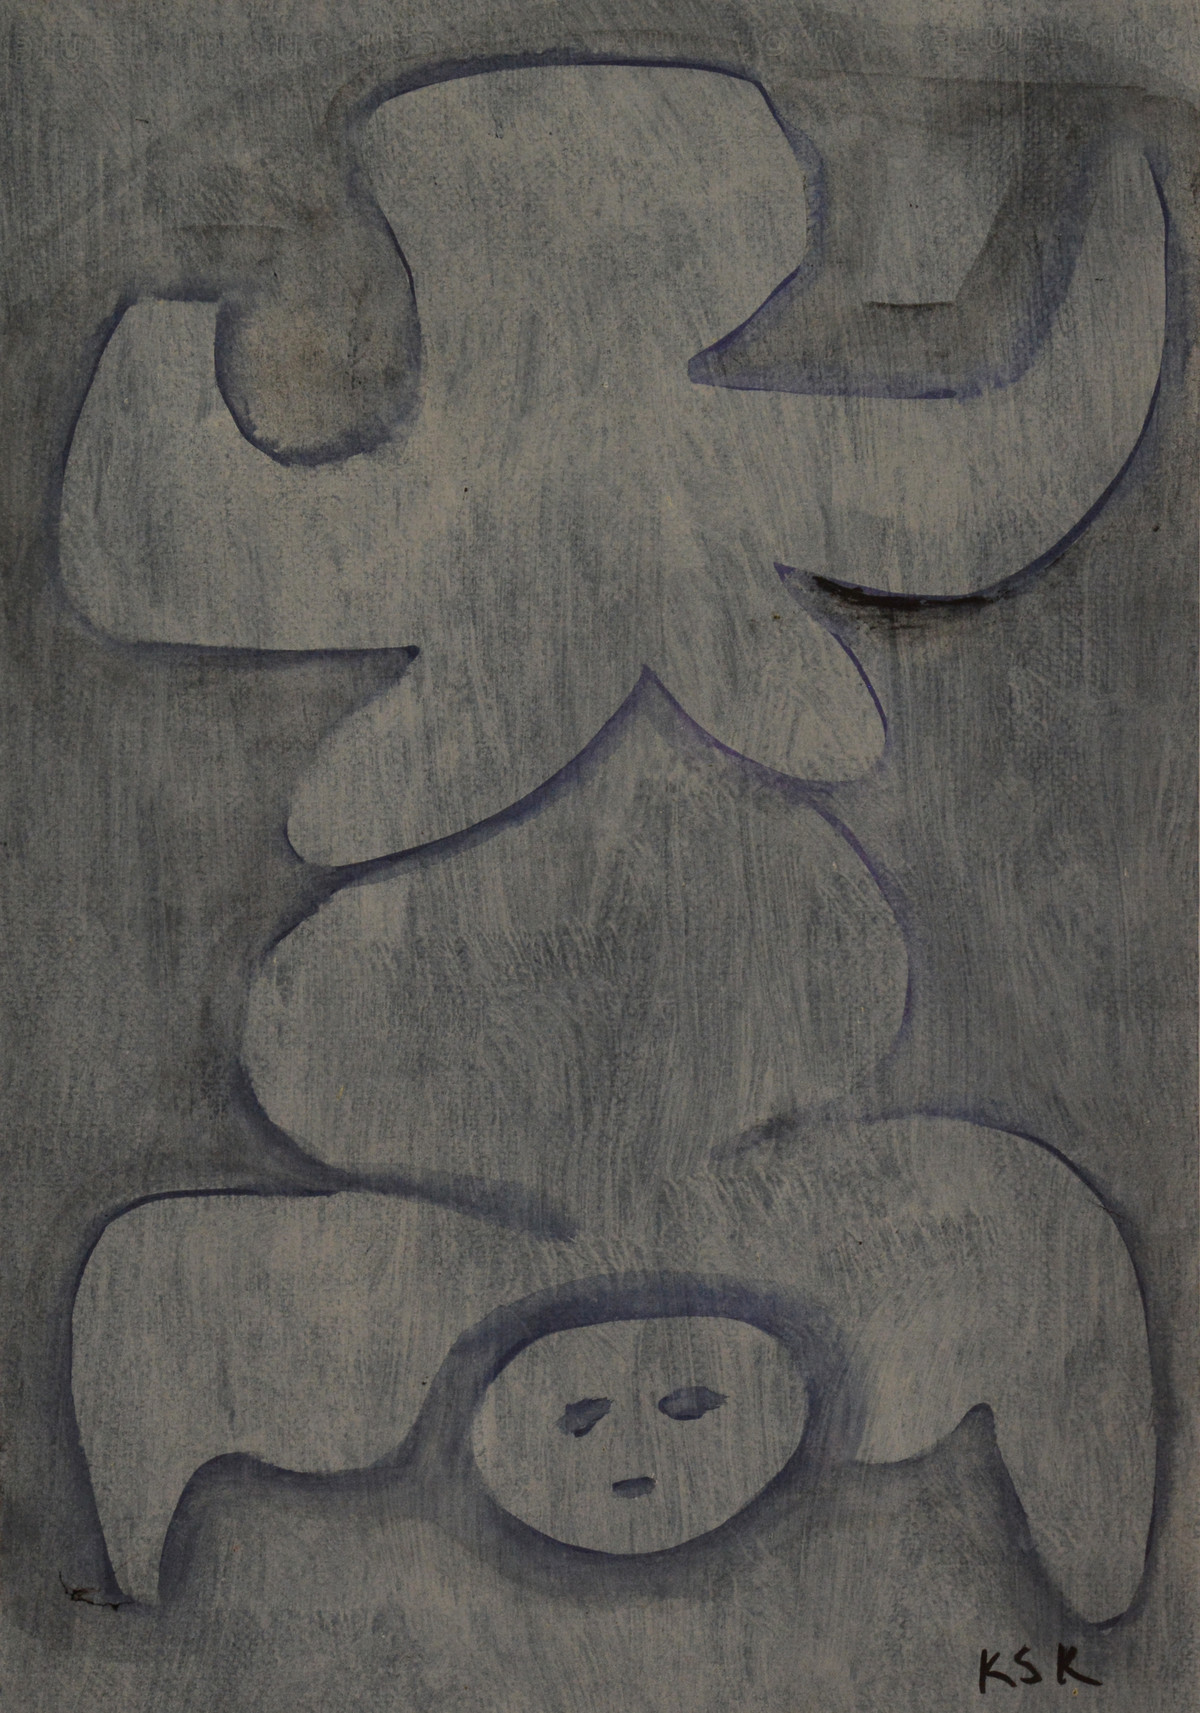 untitled by K S Kulkarni, Illustration Painting, Mixed Media on Paper, Gray color